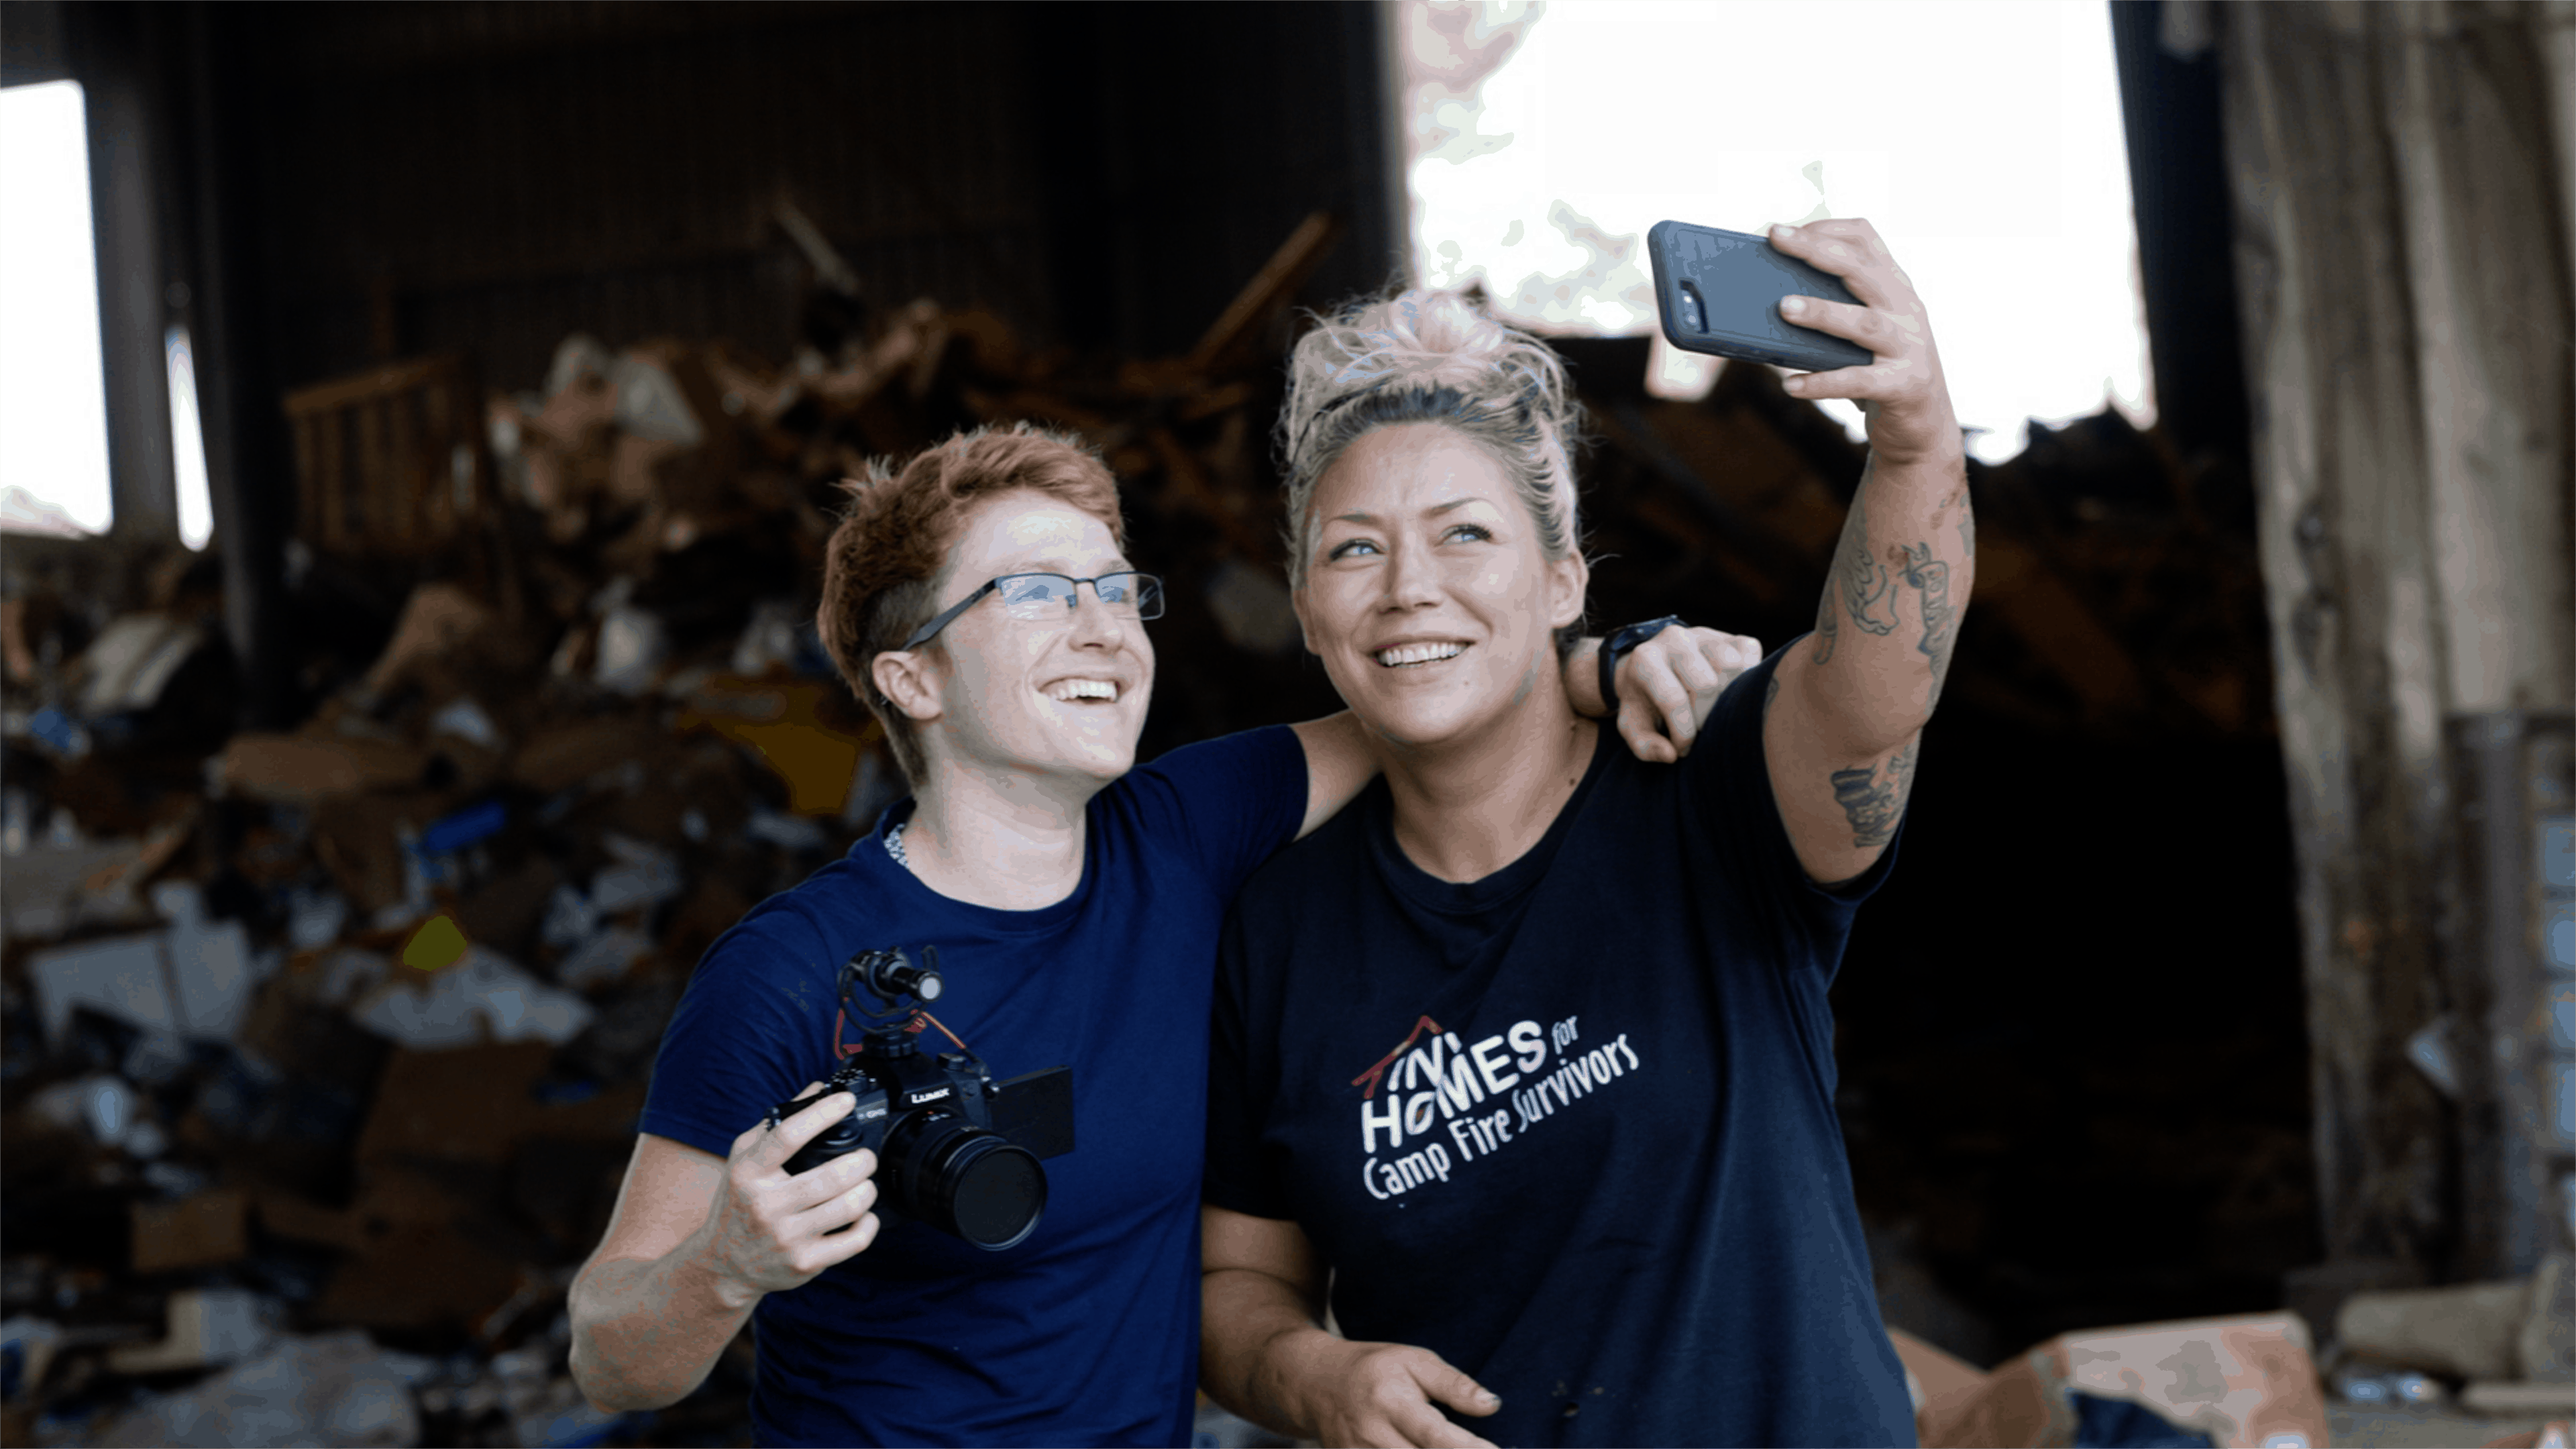 Filmmaker Amanda Lipp with Alyssa Nolan-Cain, a local Butte County resident and single mother of three who learned how to build tiny homes for California fire survivors by watching over 2,000 hours of YouTube videos